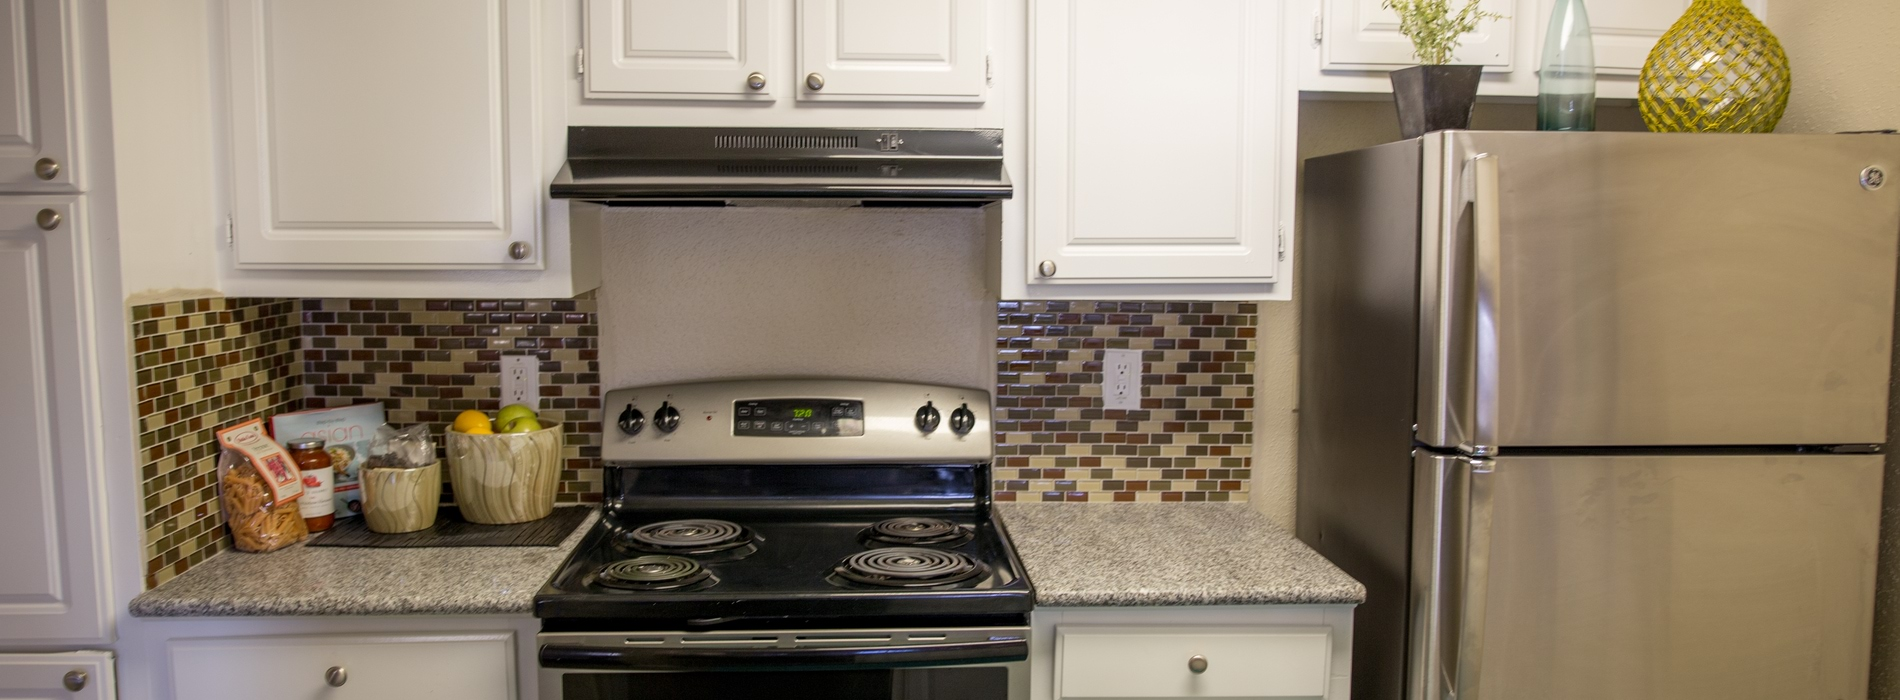 Kitchen Appliances Houston Tx Apartments For Rent In Houston Tx Providence At Champions Home